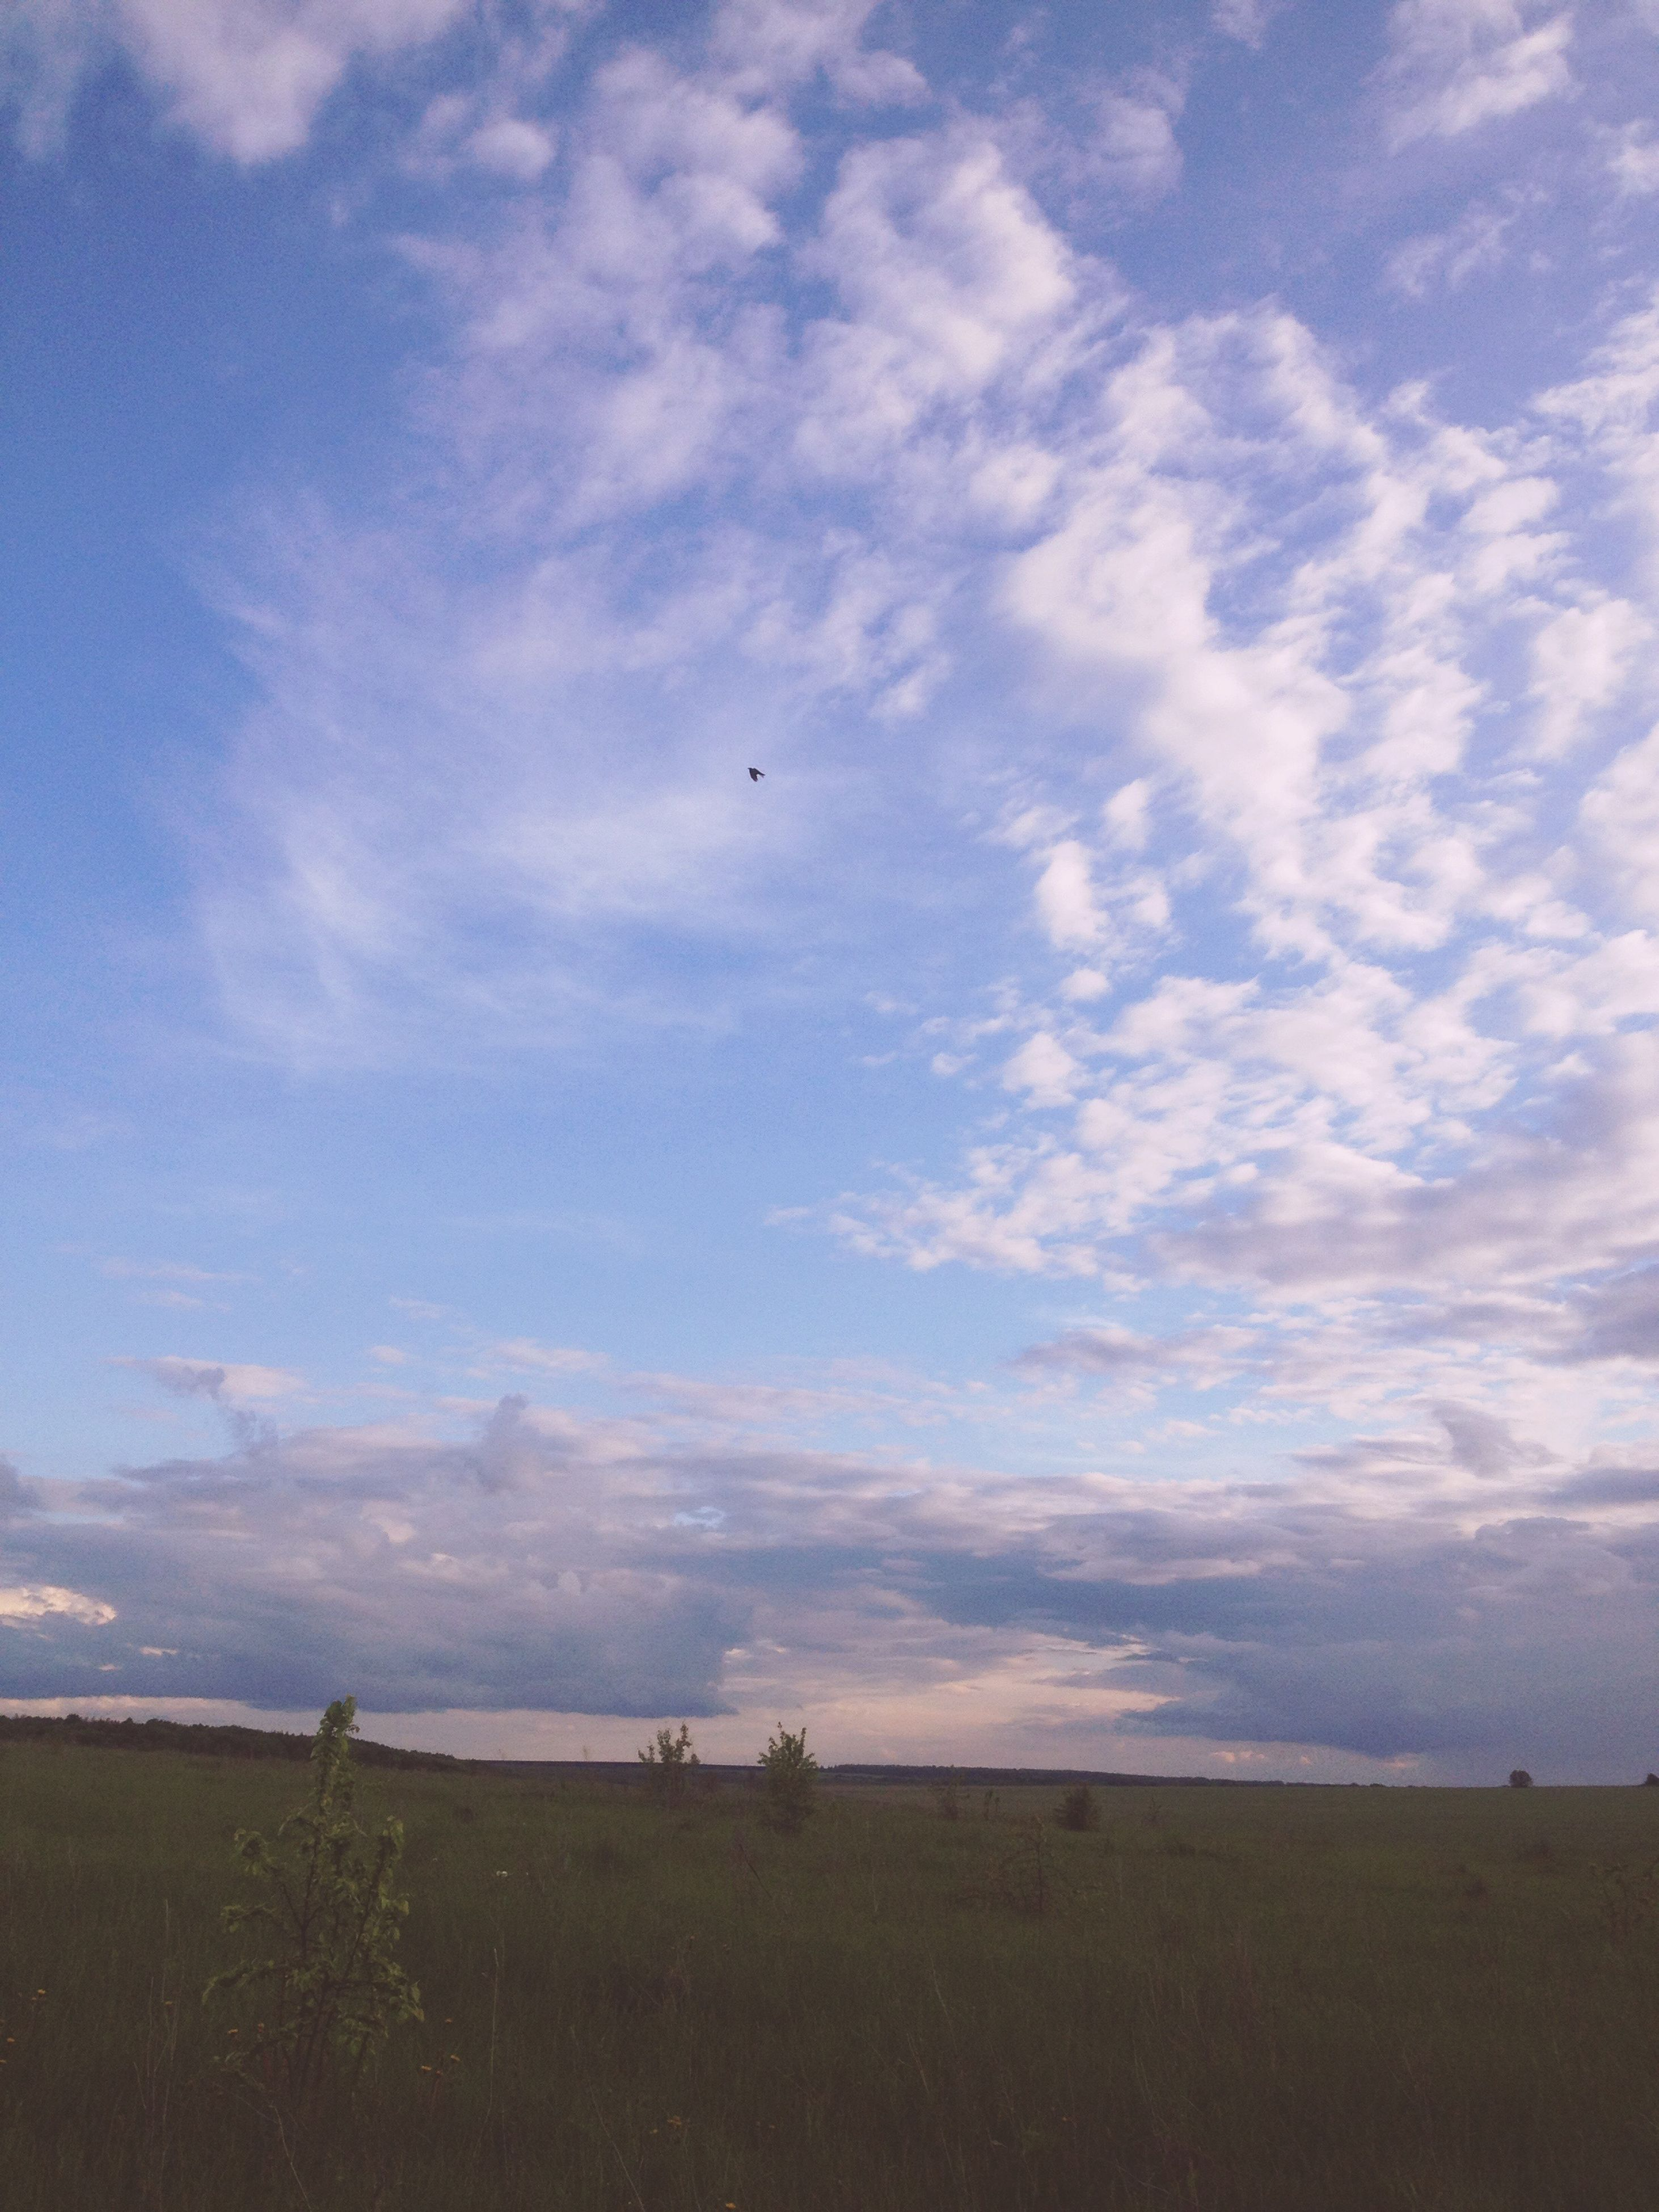 sky, cloud - sky, tranquil scene, tranquility, landscape, scenics, cloud, beauty in nature, field, nature, flying, cloudy, animal themes, bird, horizon over land, outdoors, idyllic, day, rural scene, grass